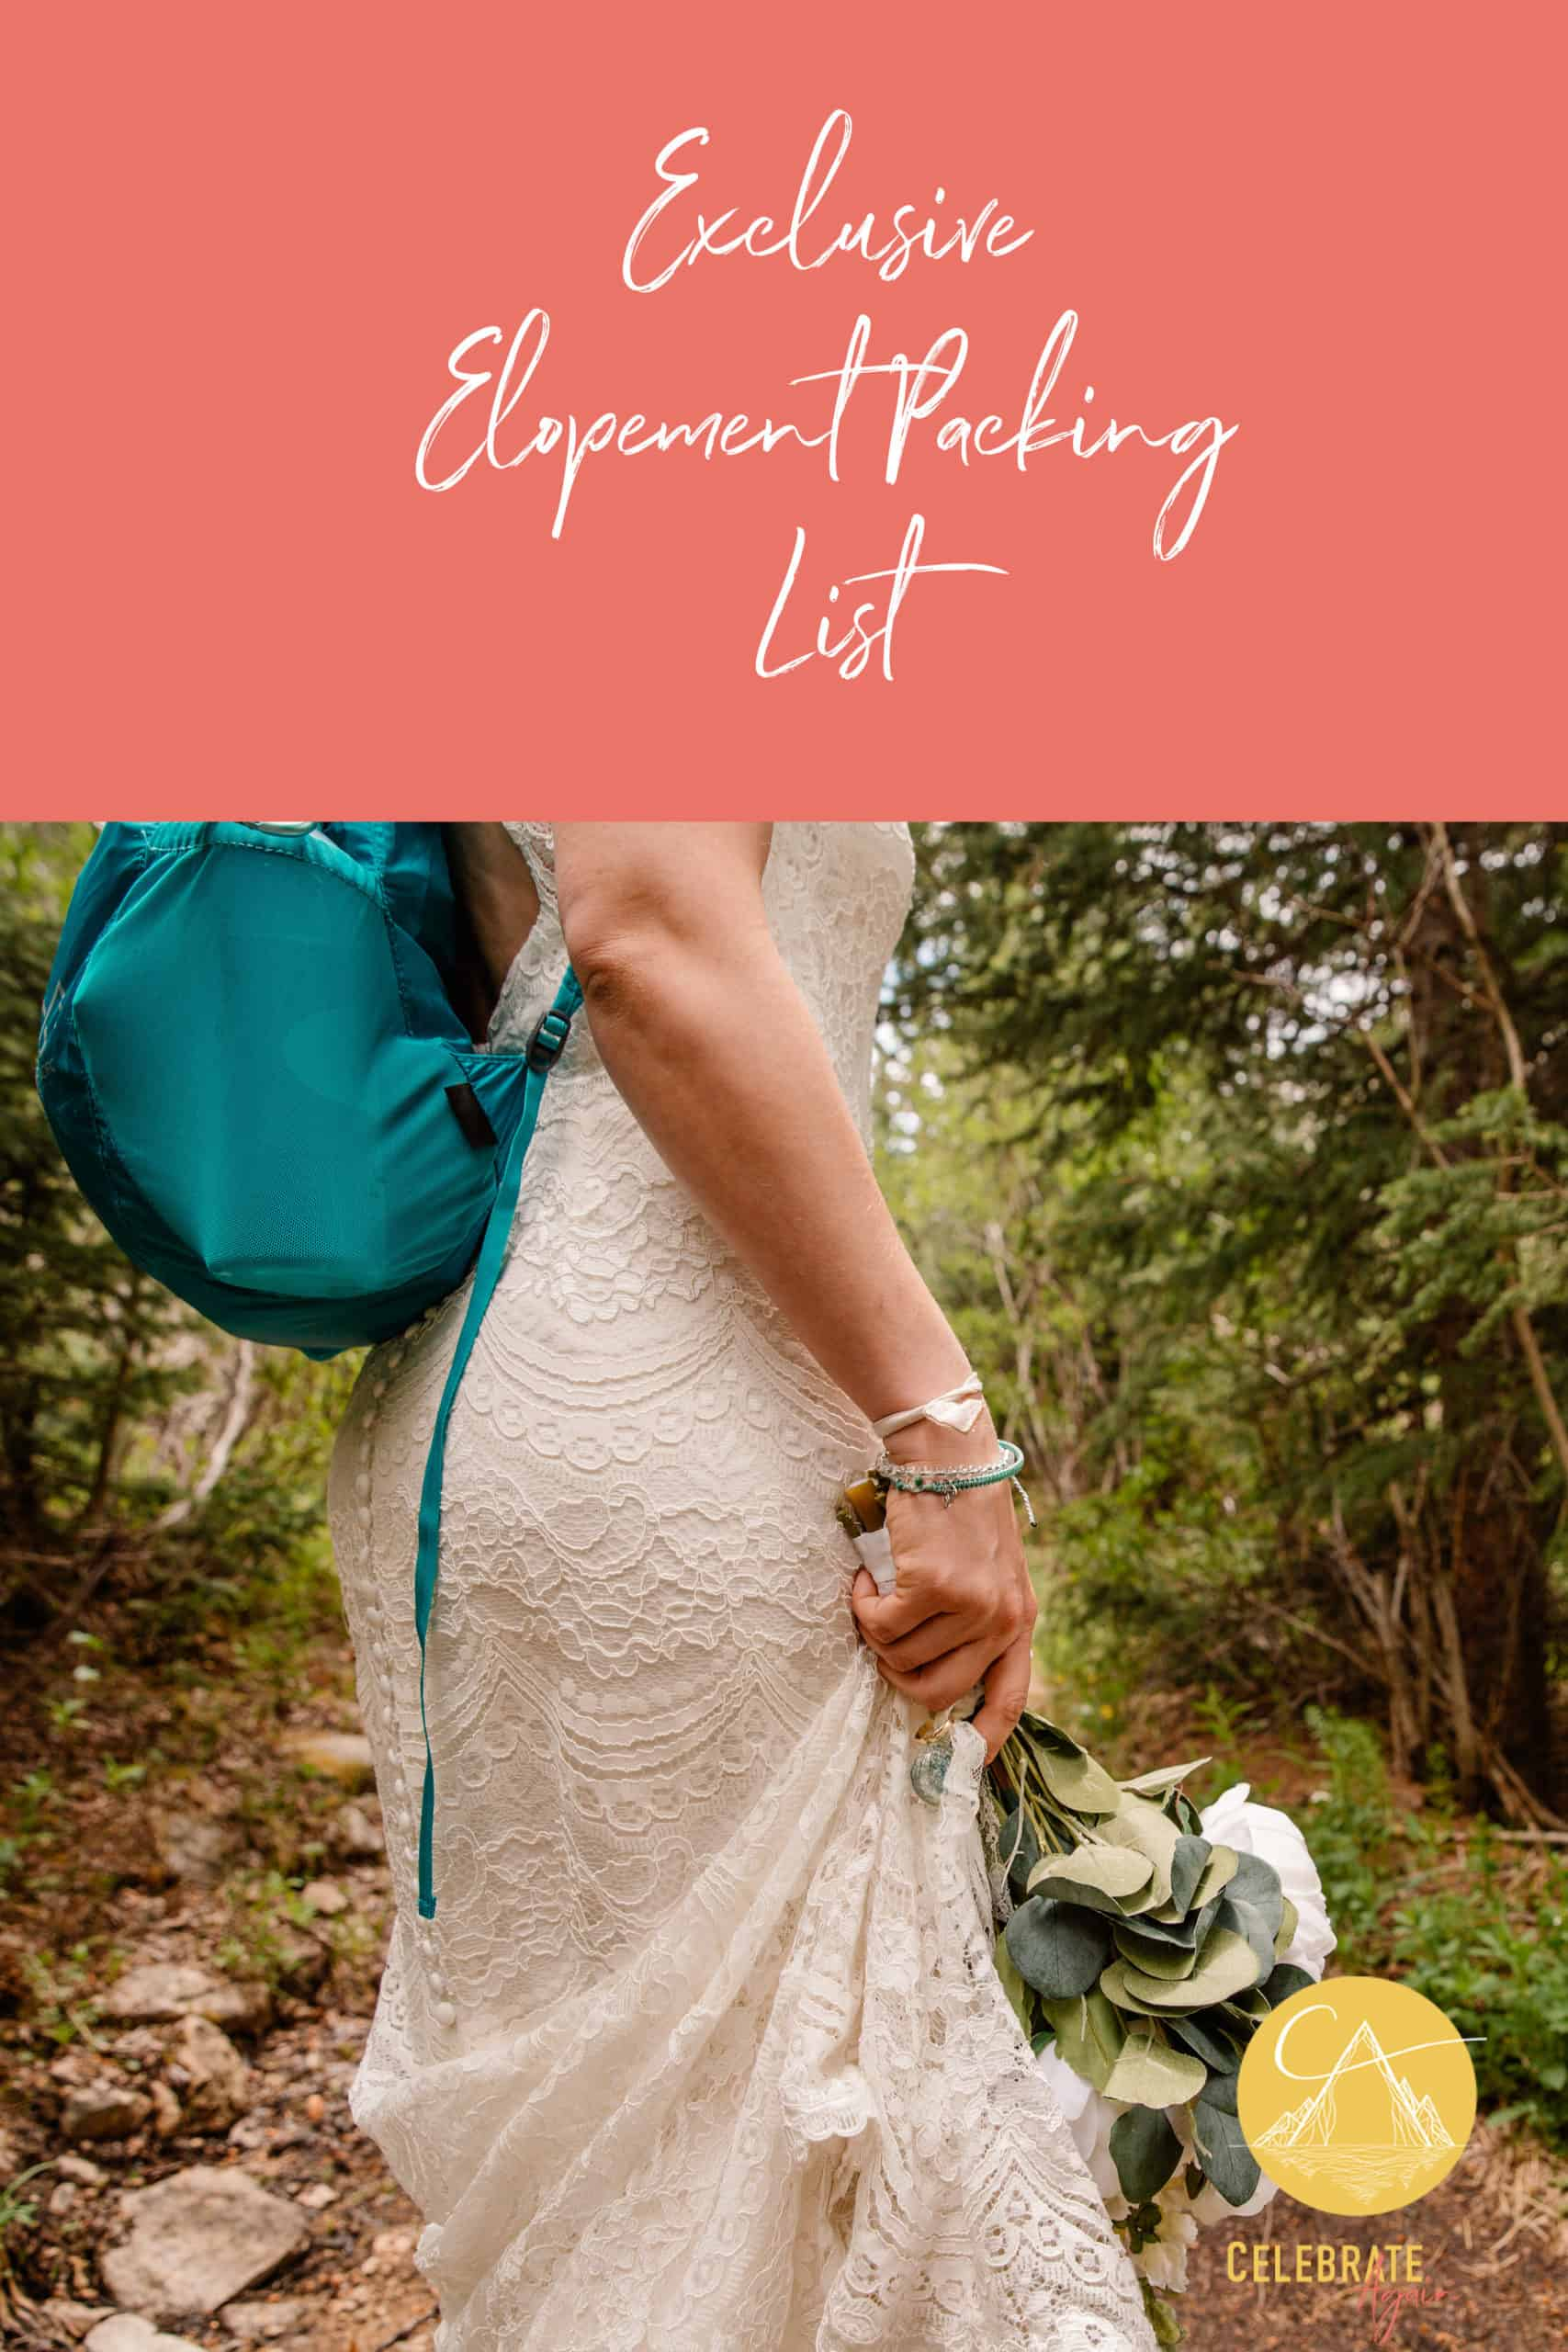 """exclusive elopement packing list"""